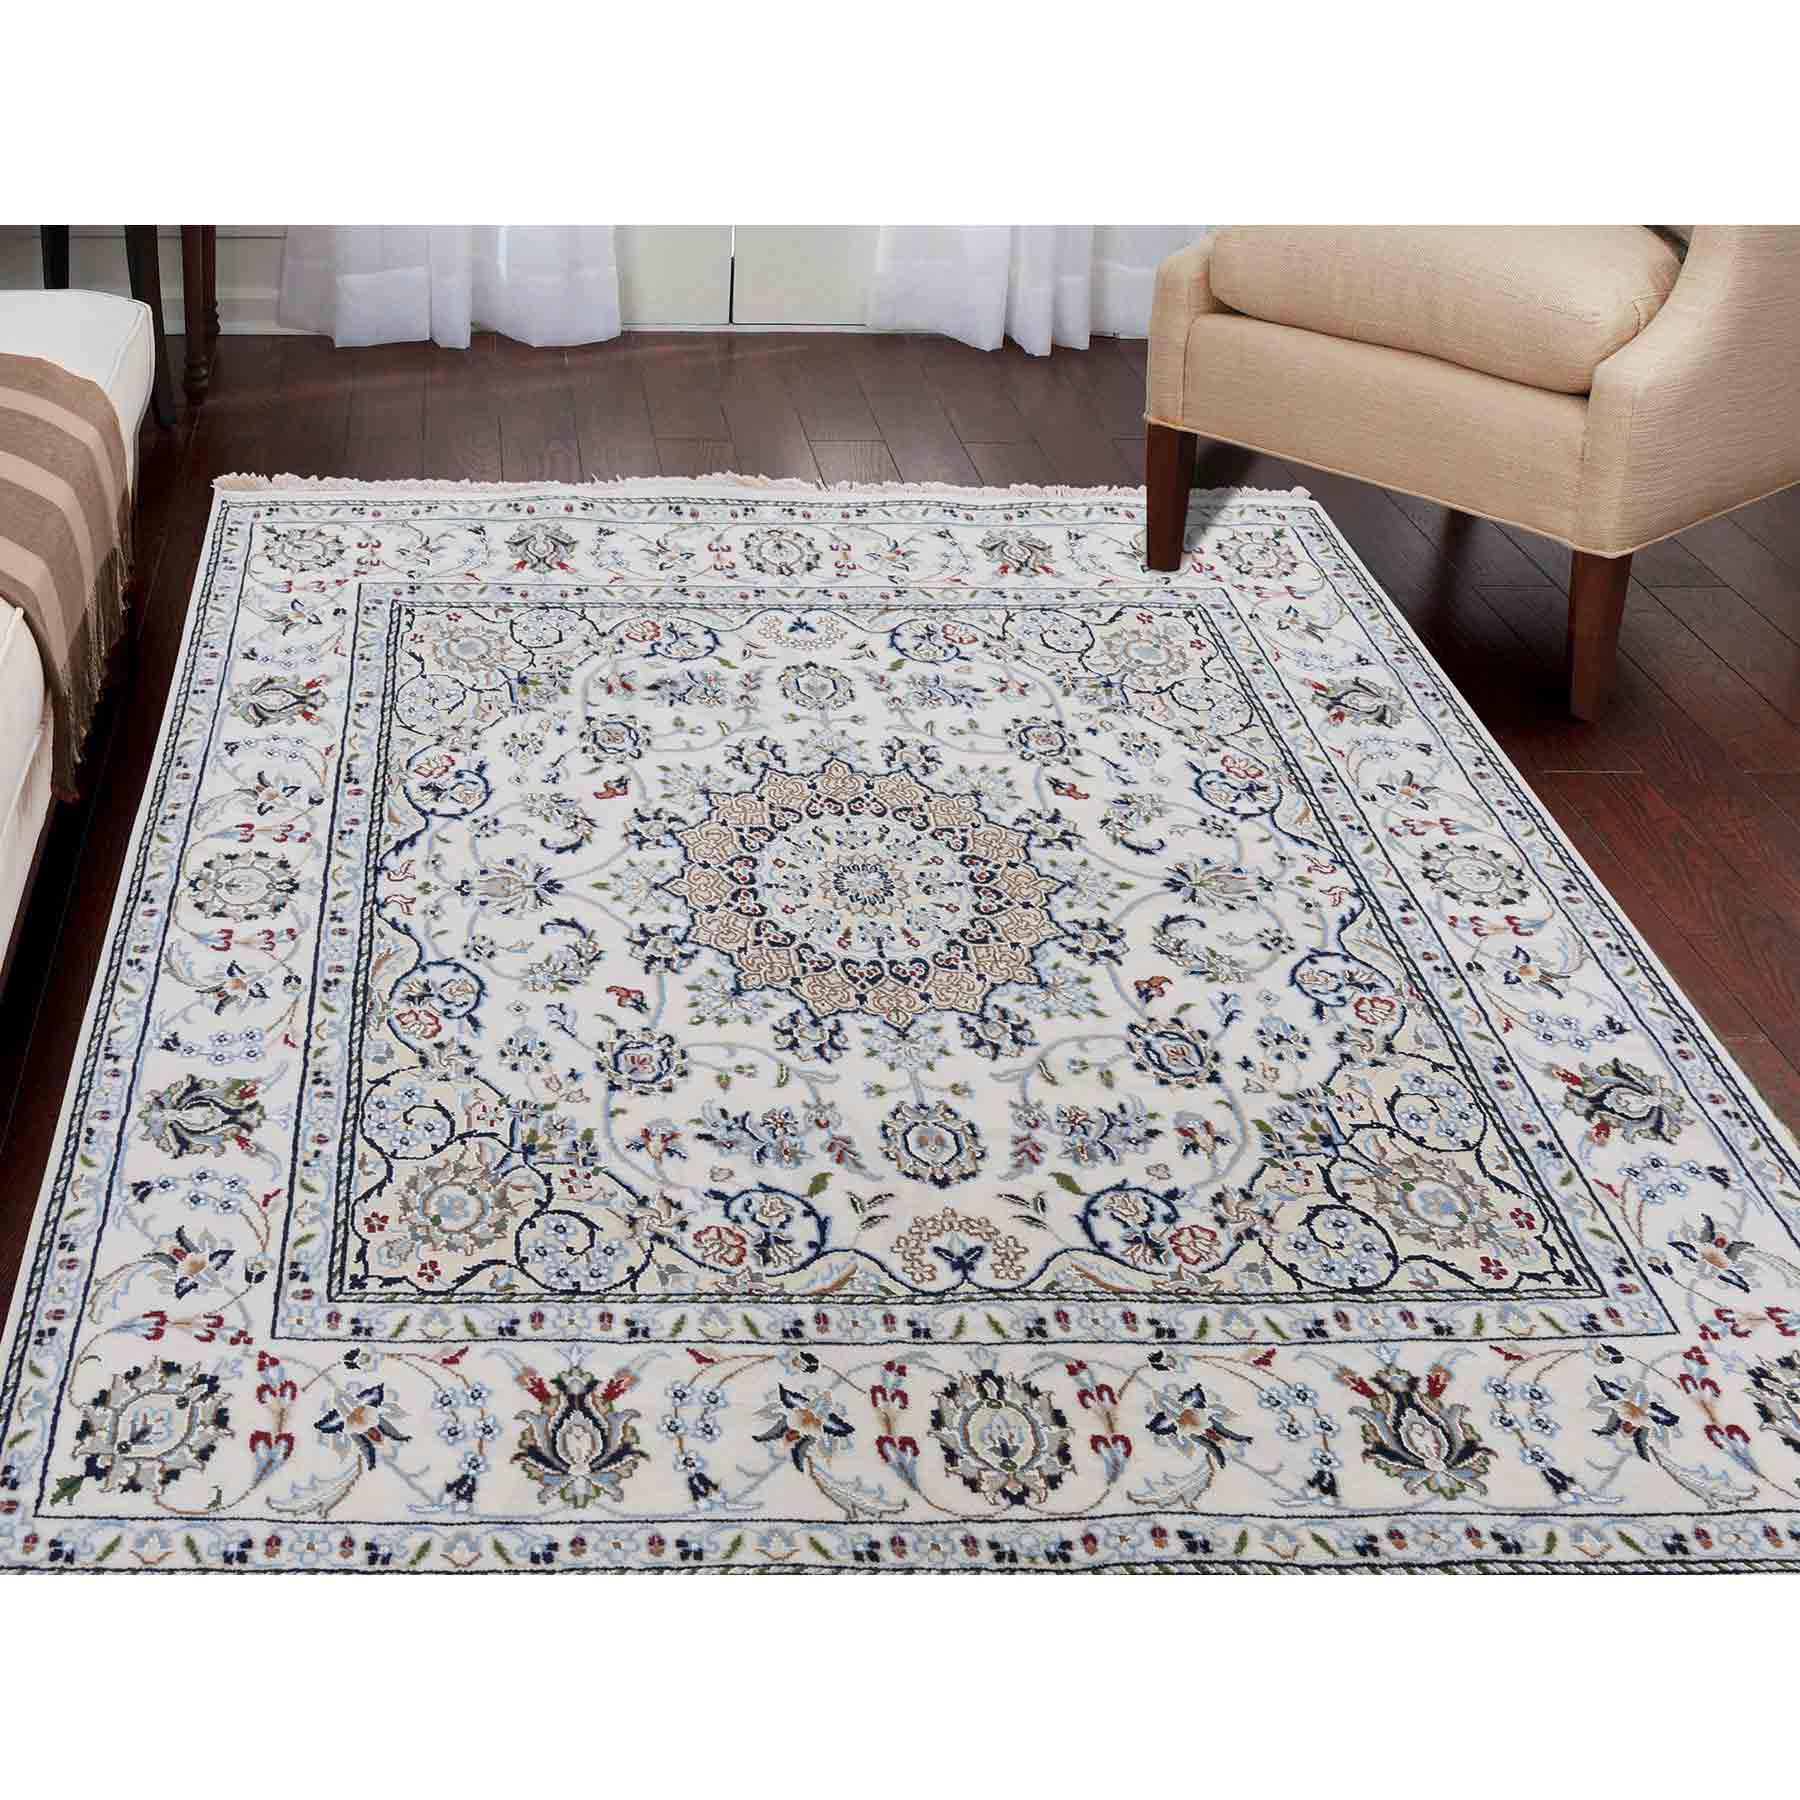 Fine-Oriental-Hand-Knotted-Rug-231860